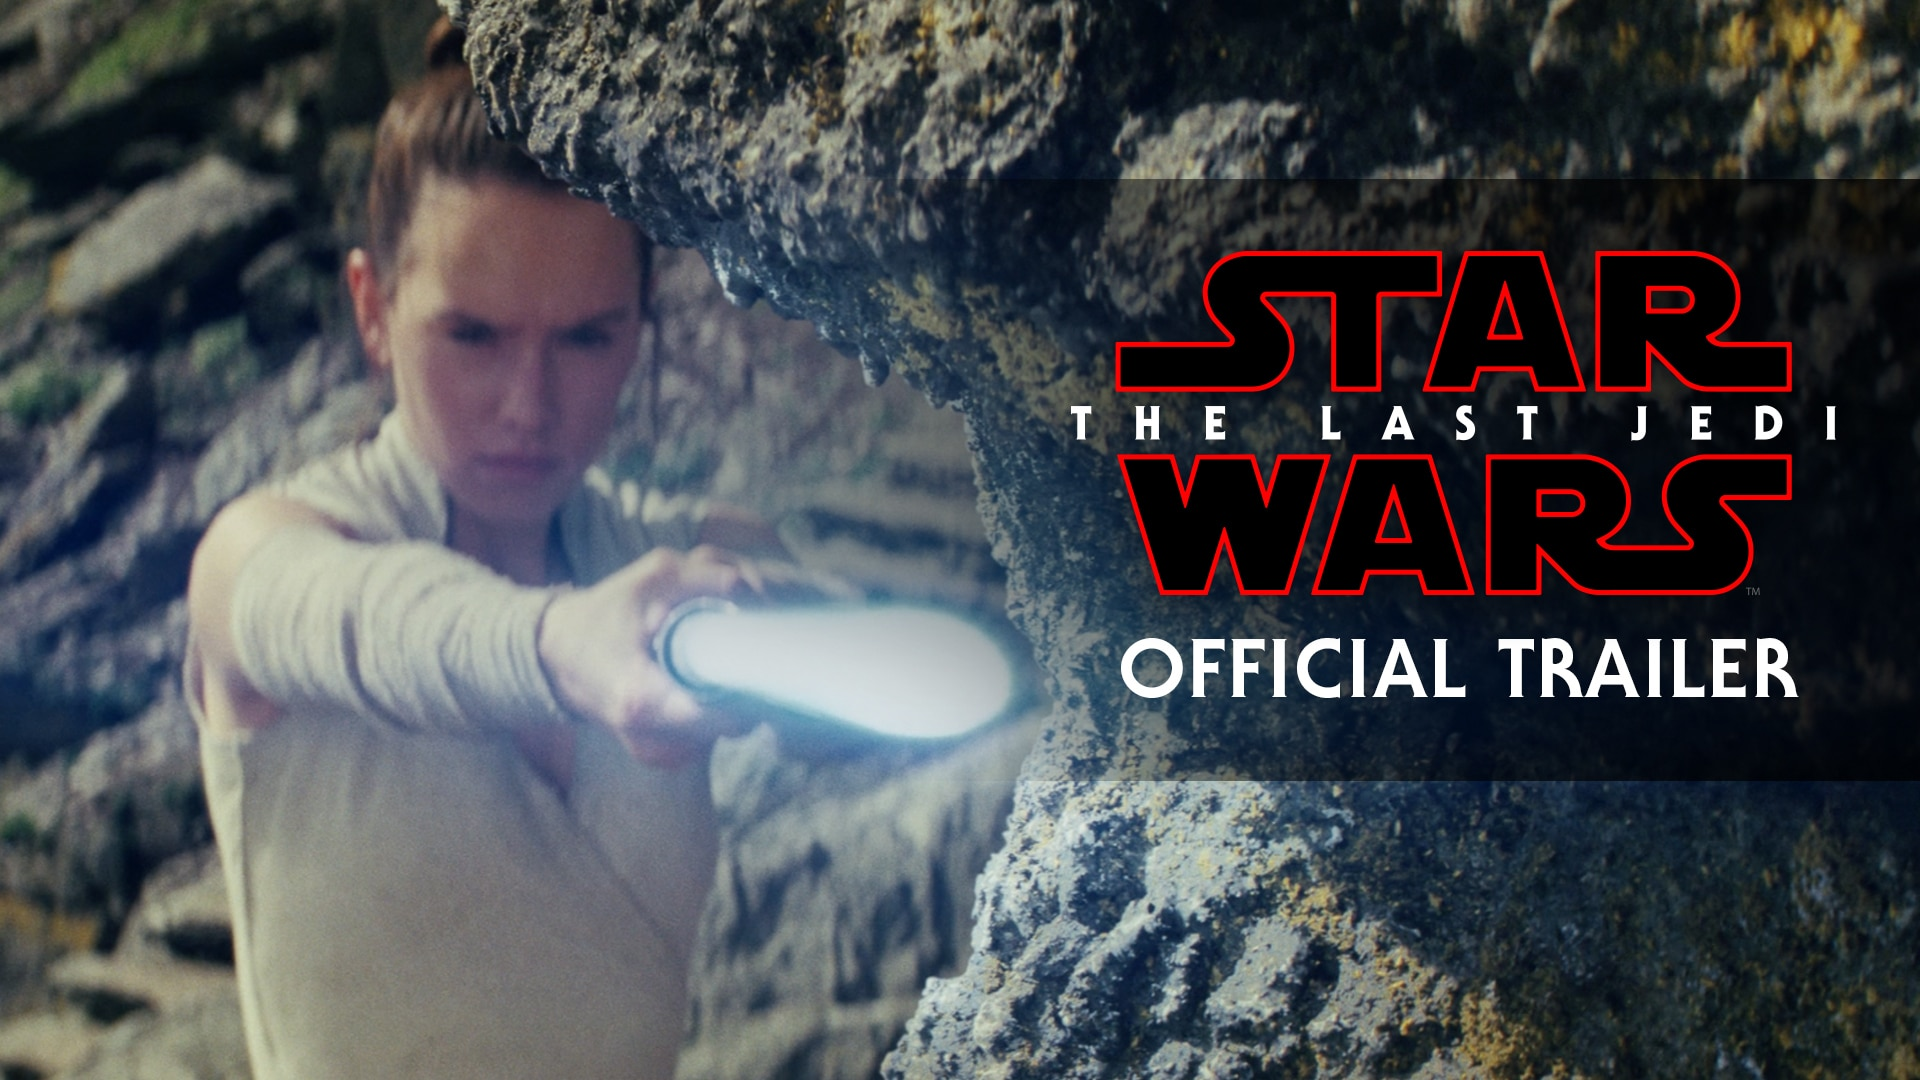 official trailer star wars the last jedi disney video - Christmas Vacation 2 Trailer